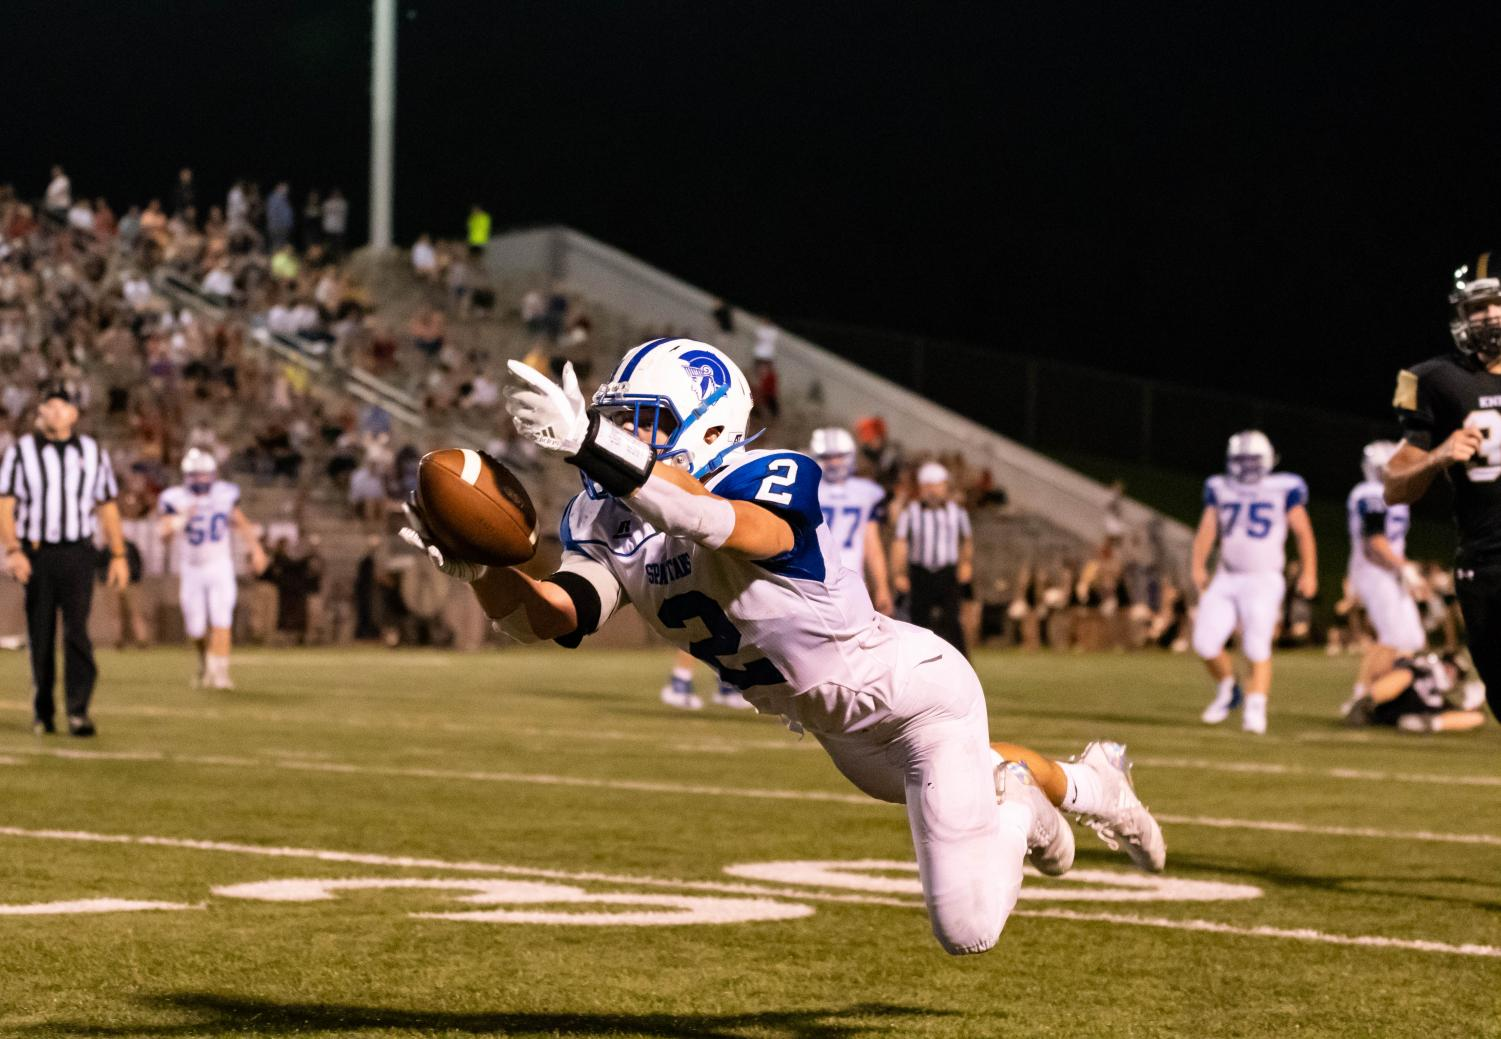 East senior AJ Muthersbaugh attempts to catch a pass vs. Southeast on Friday, September 14th at Seacrest Field.  Southeast won the game 14-12.